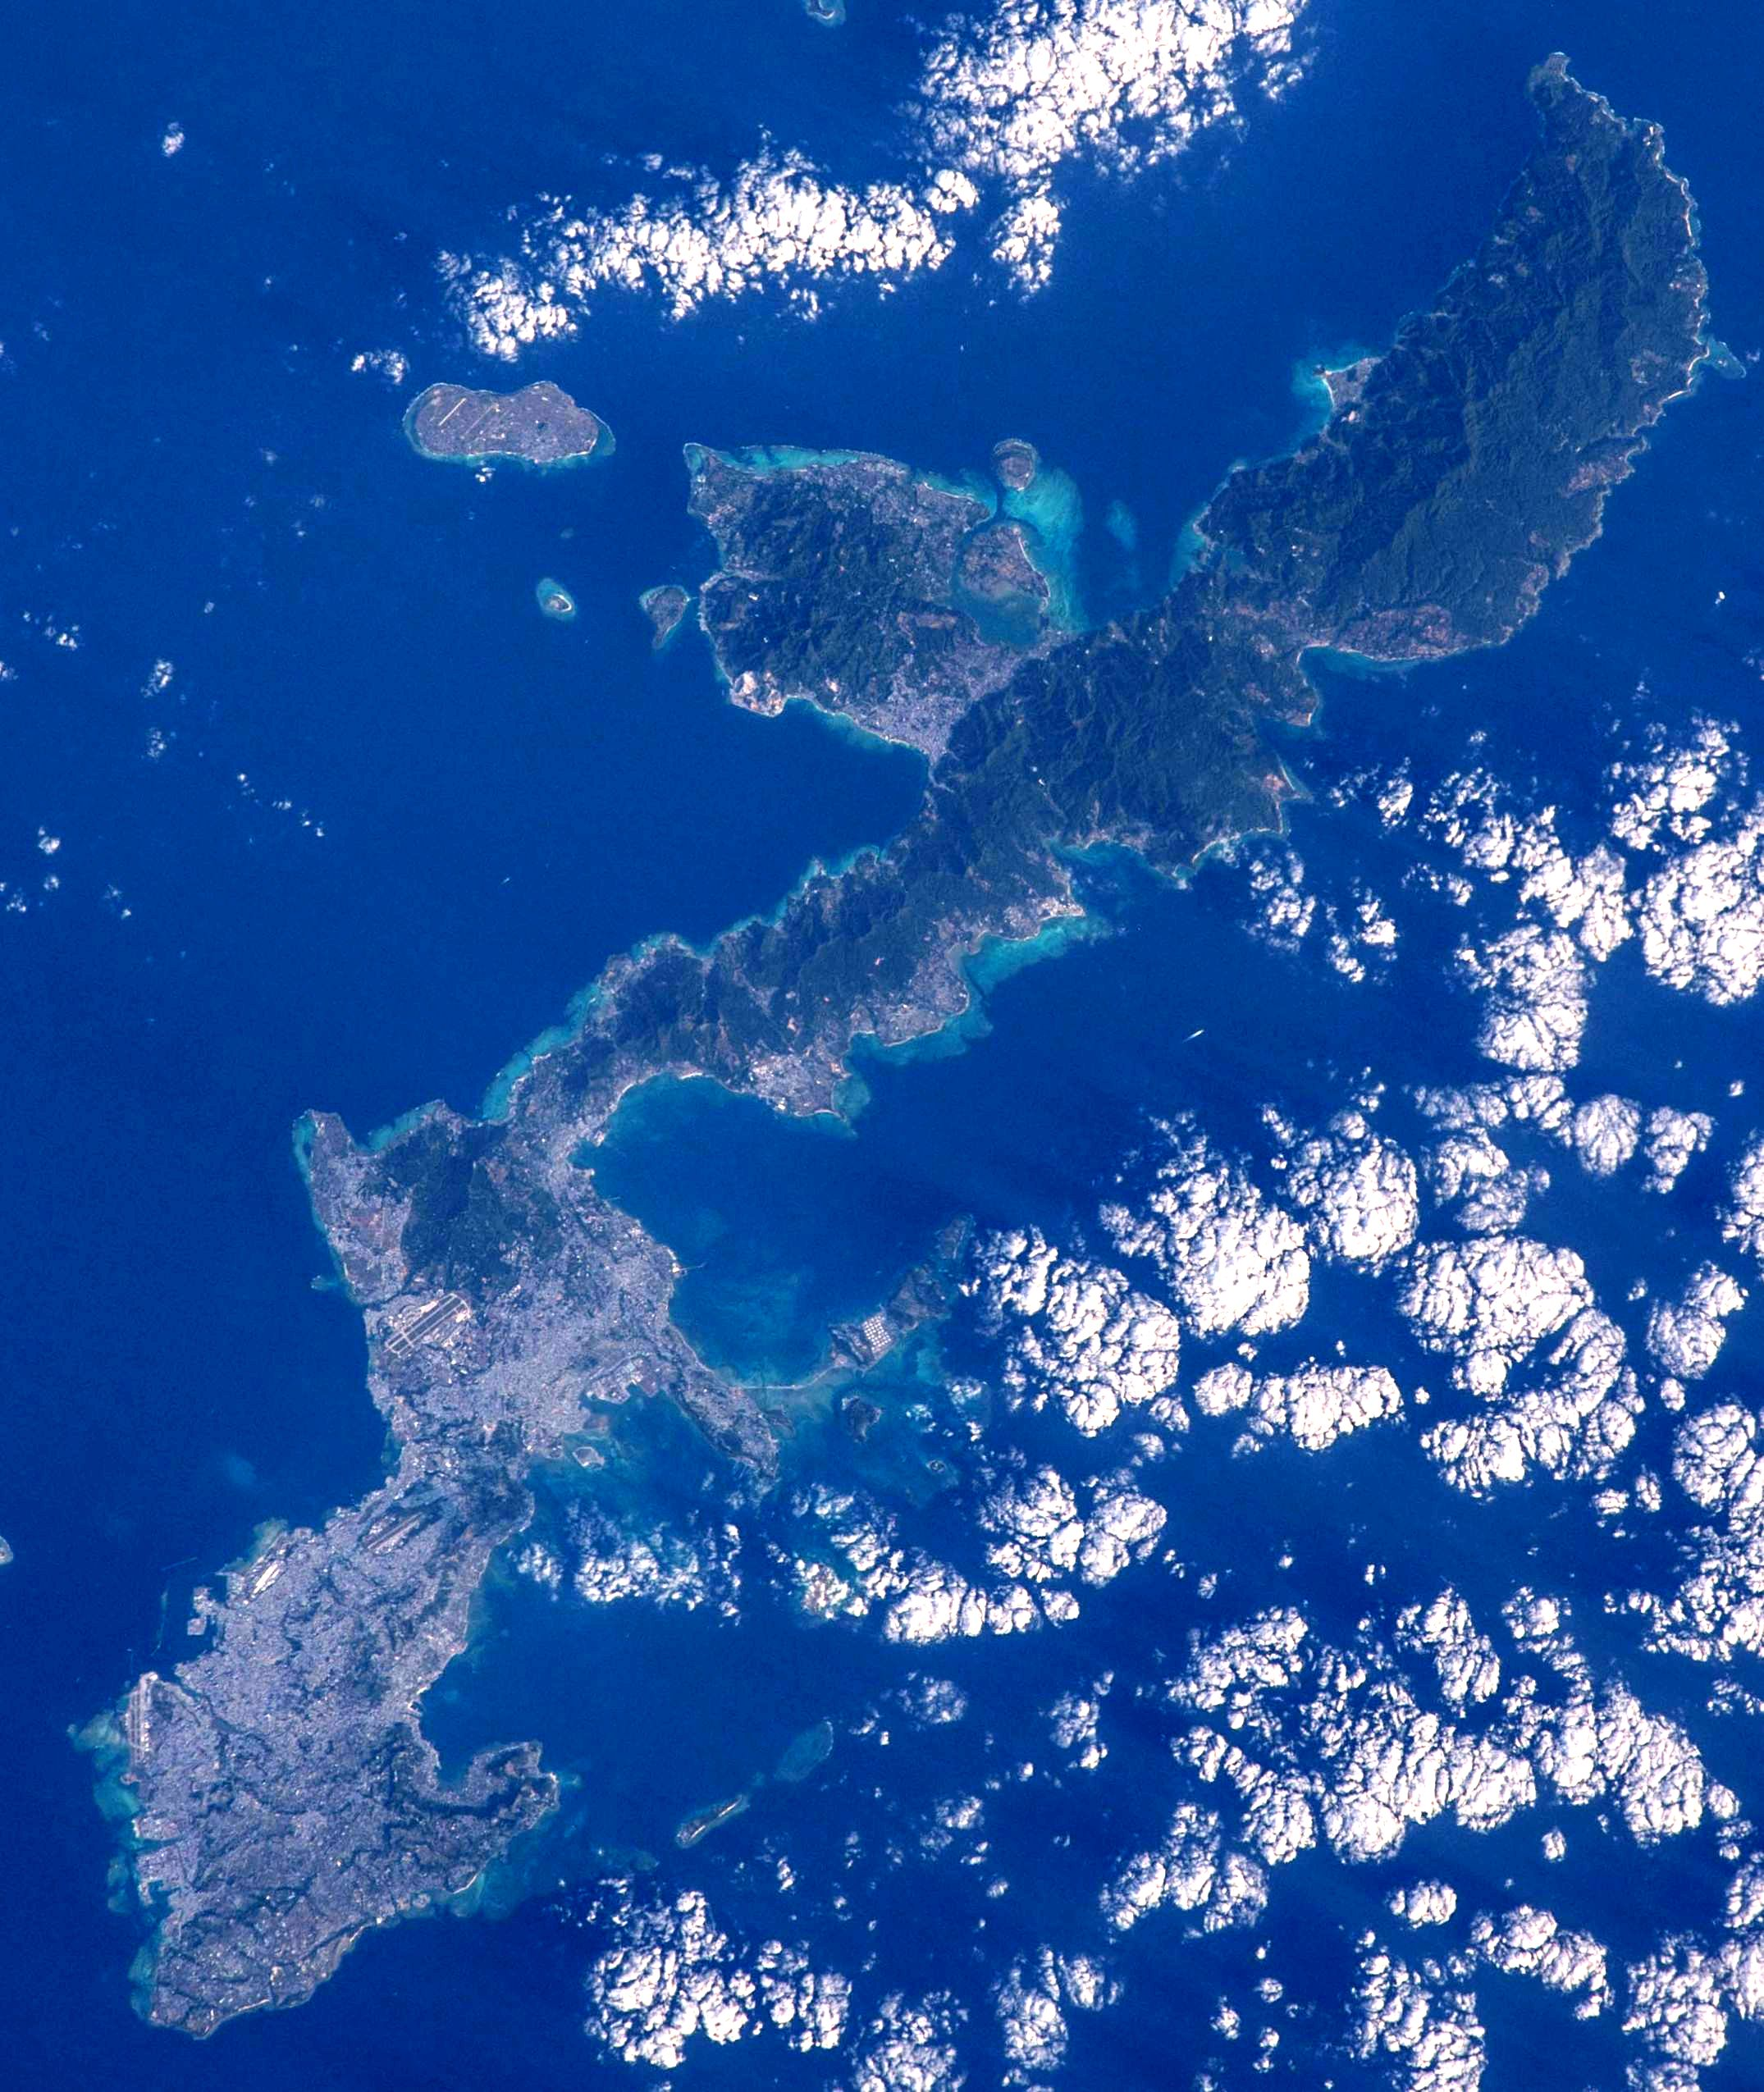 Okinawa Island - Wikipedia on map of african islands, map of inland rivers, map of romance, map of natural harbors, map of scuba diving, map of orange islands, map of shopping, map of world islands, map of hawaii, map of palm islands, map of european islands, map of berry islands, map of mexican islands, map of southern islands, map of arctic islands, map of spanish islands, map of space stations, map of an imaginary island, map of surf, map of italian islands,